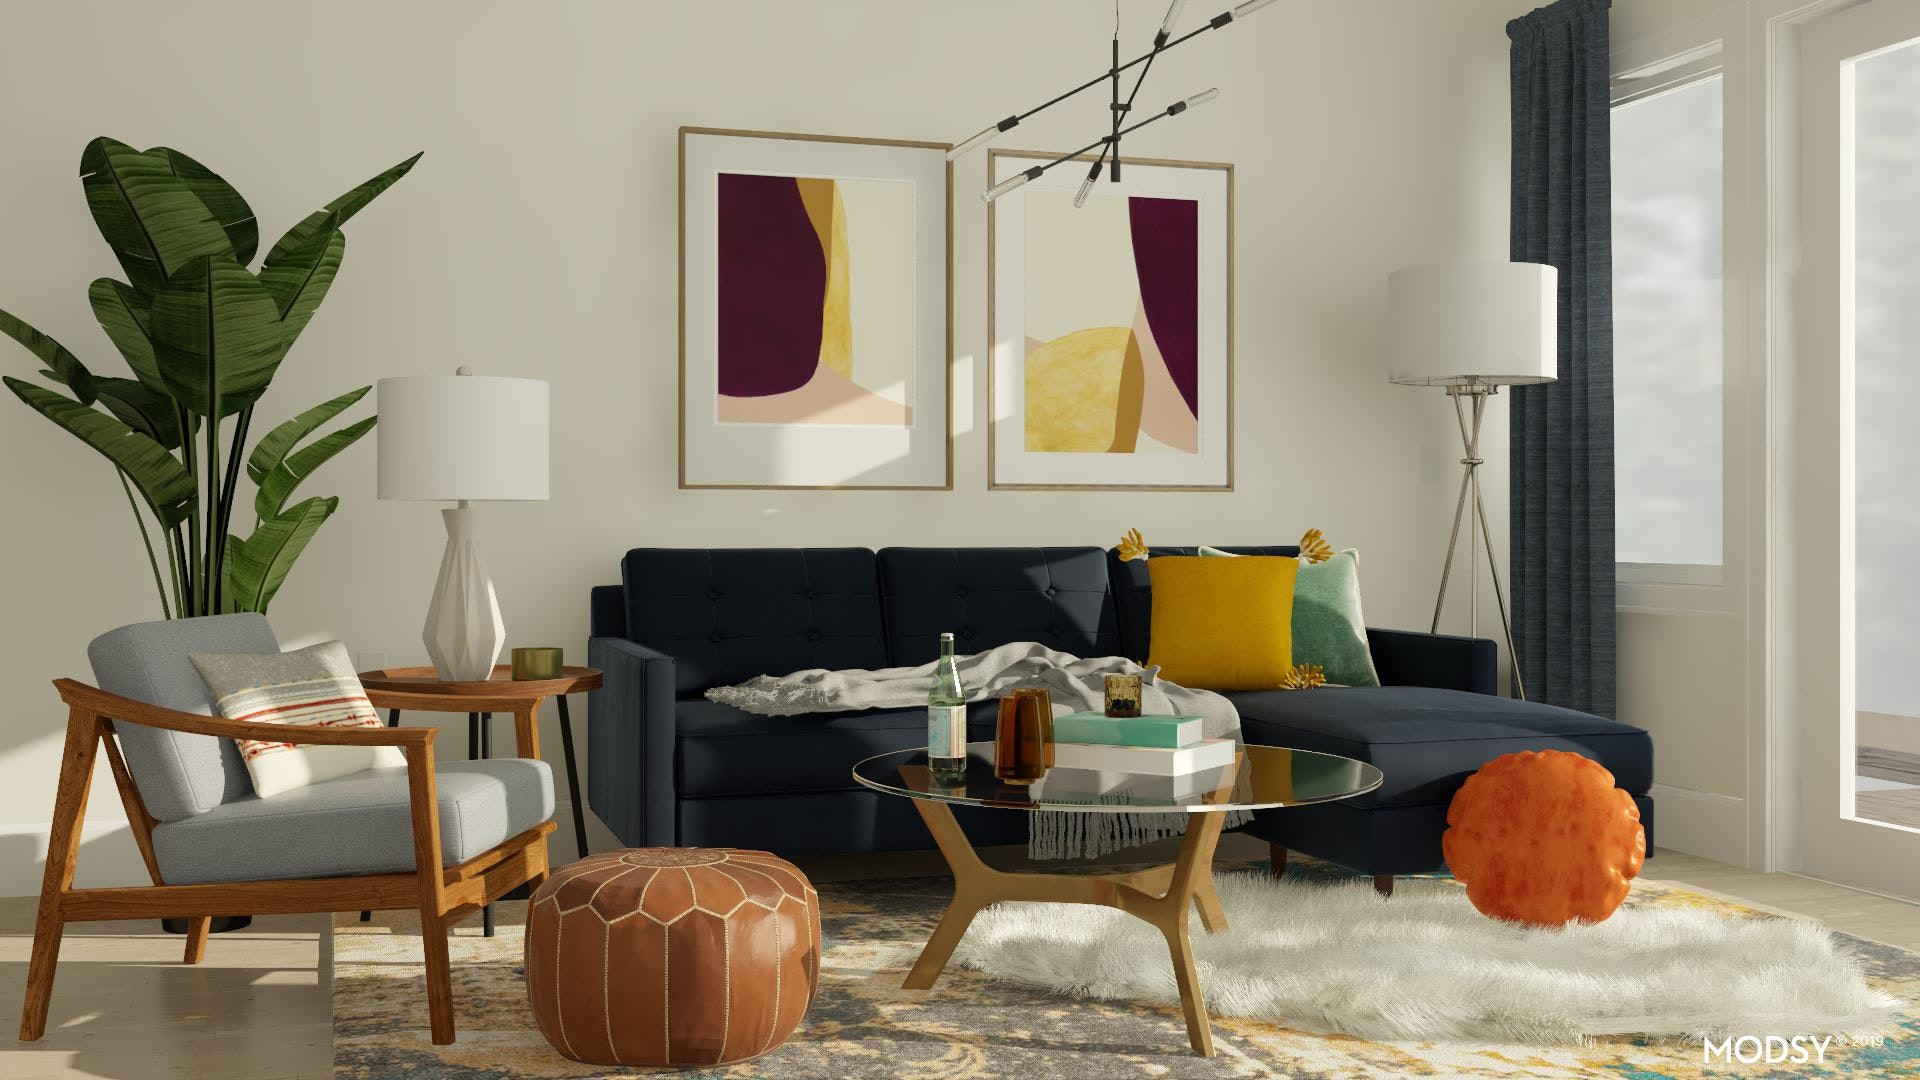 Faux Fur Rug Design Ideas And Styles From Modsy Designers